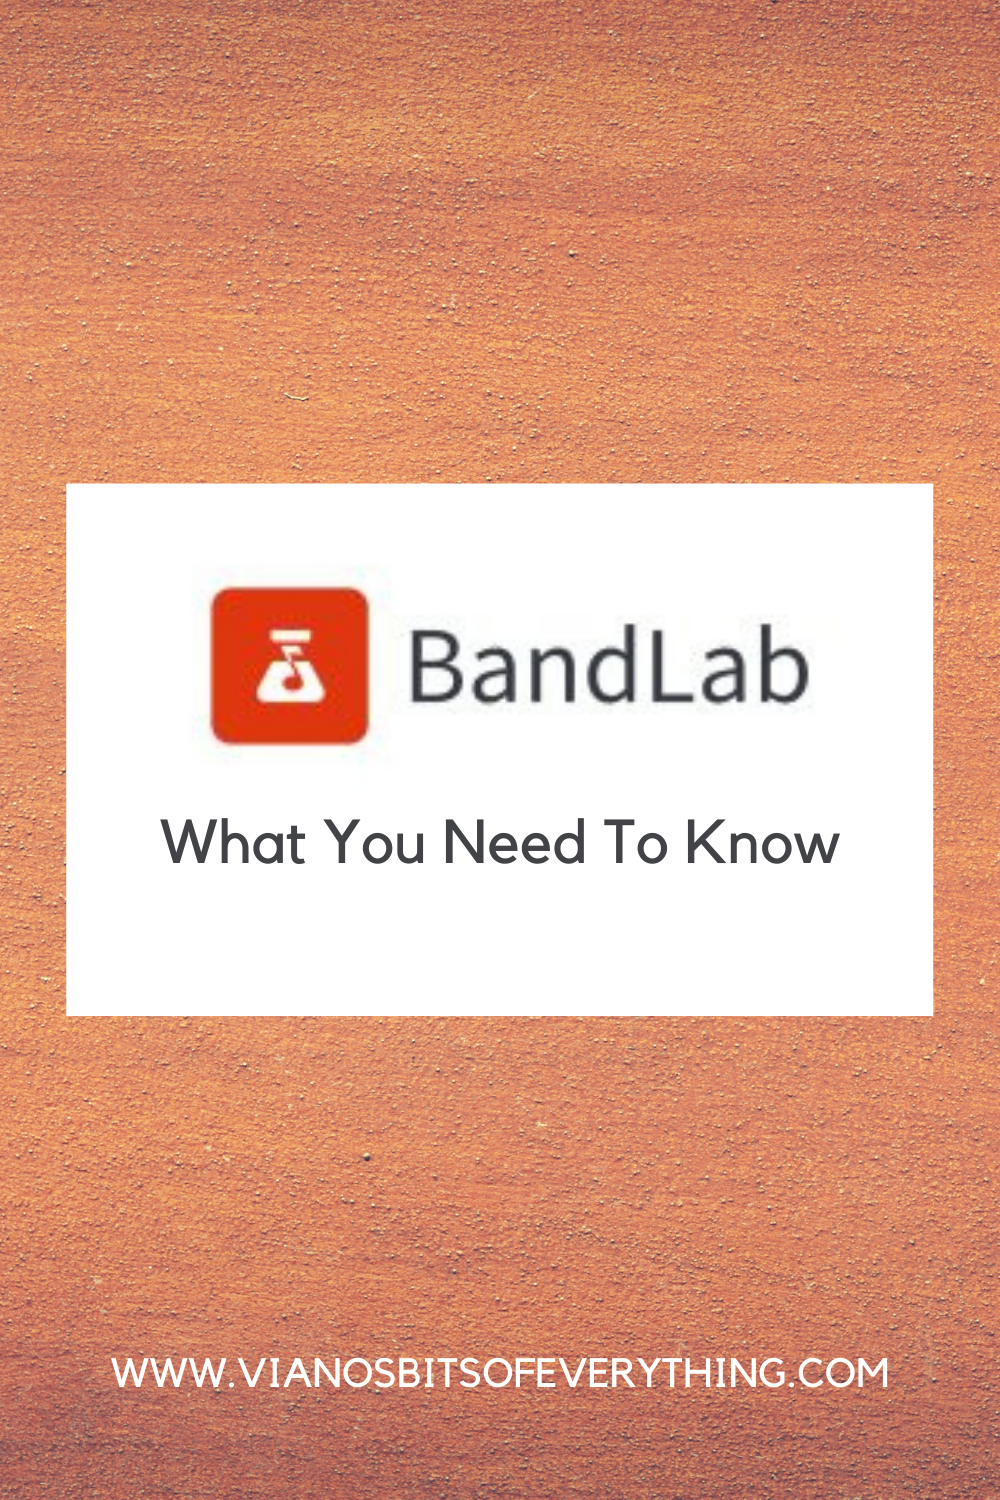 BandLab: What You Need To Know